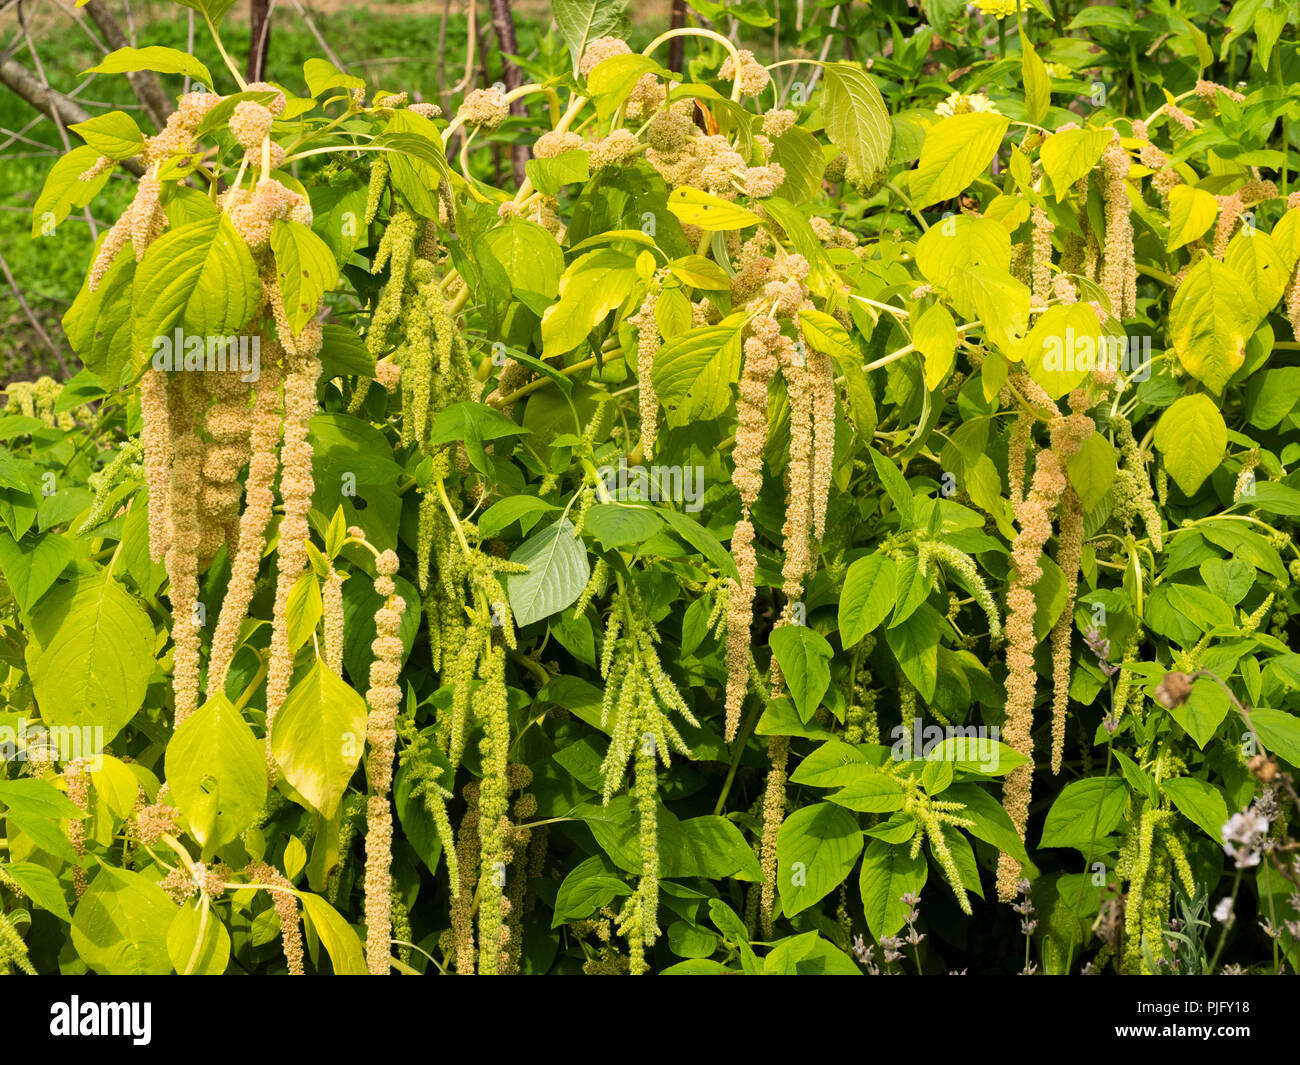 Green fading to yellow flower tassels of Love lies bleeding, a summer bedding annual, Amaranthus caudatus 'Viridis' - Stock Image